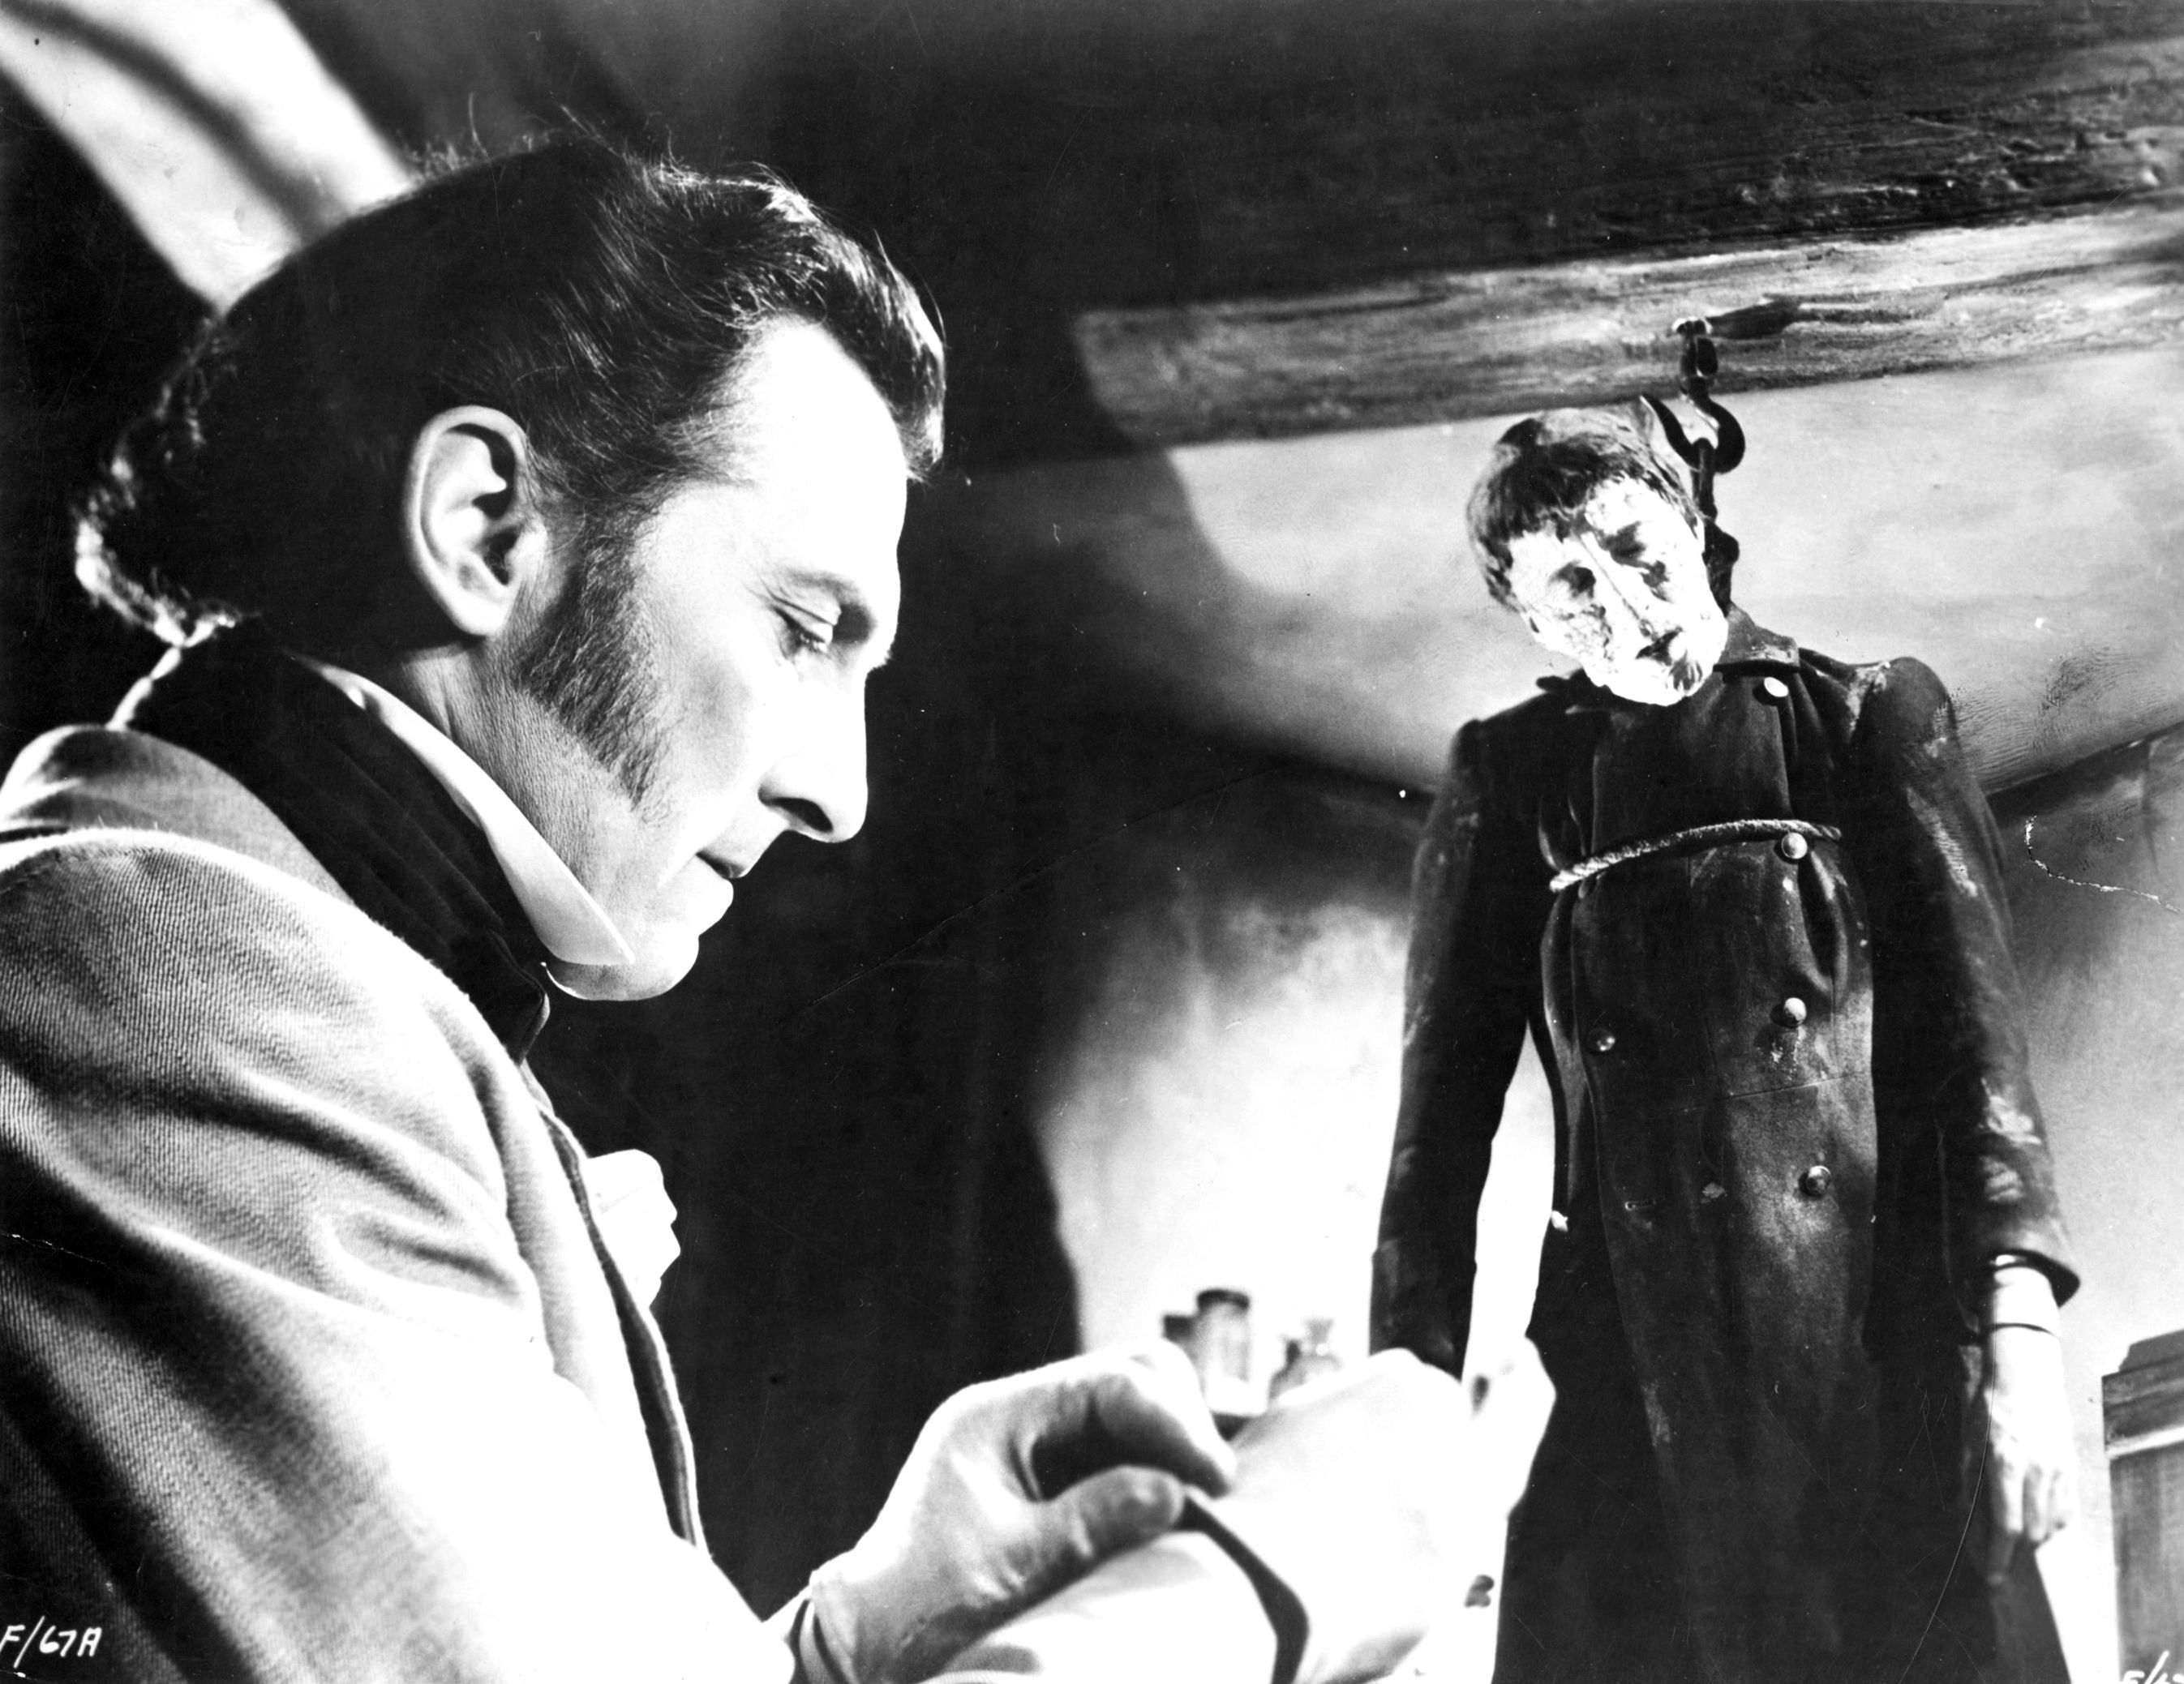 Baron Frankenstein (Peter Cushing) reads a book while his monster (Christopher Lee) hangs on a hook in The Curse of Frankenstein (1957)